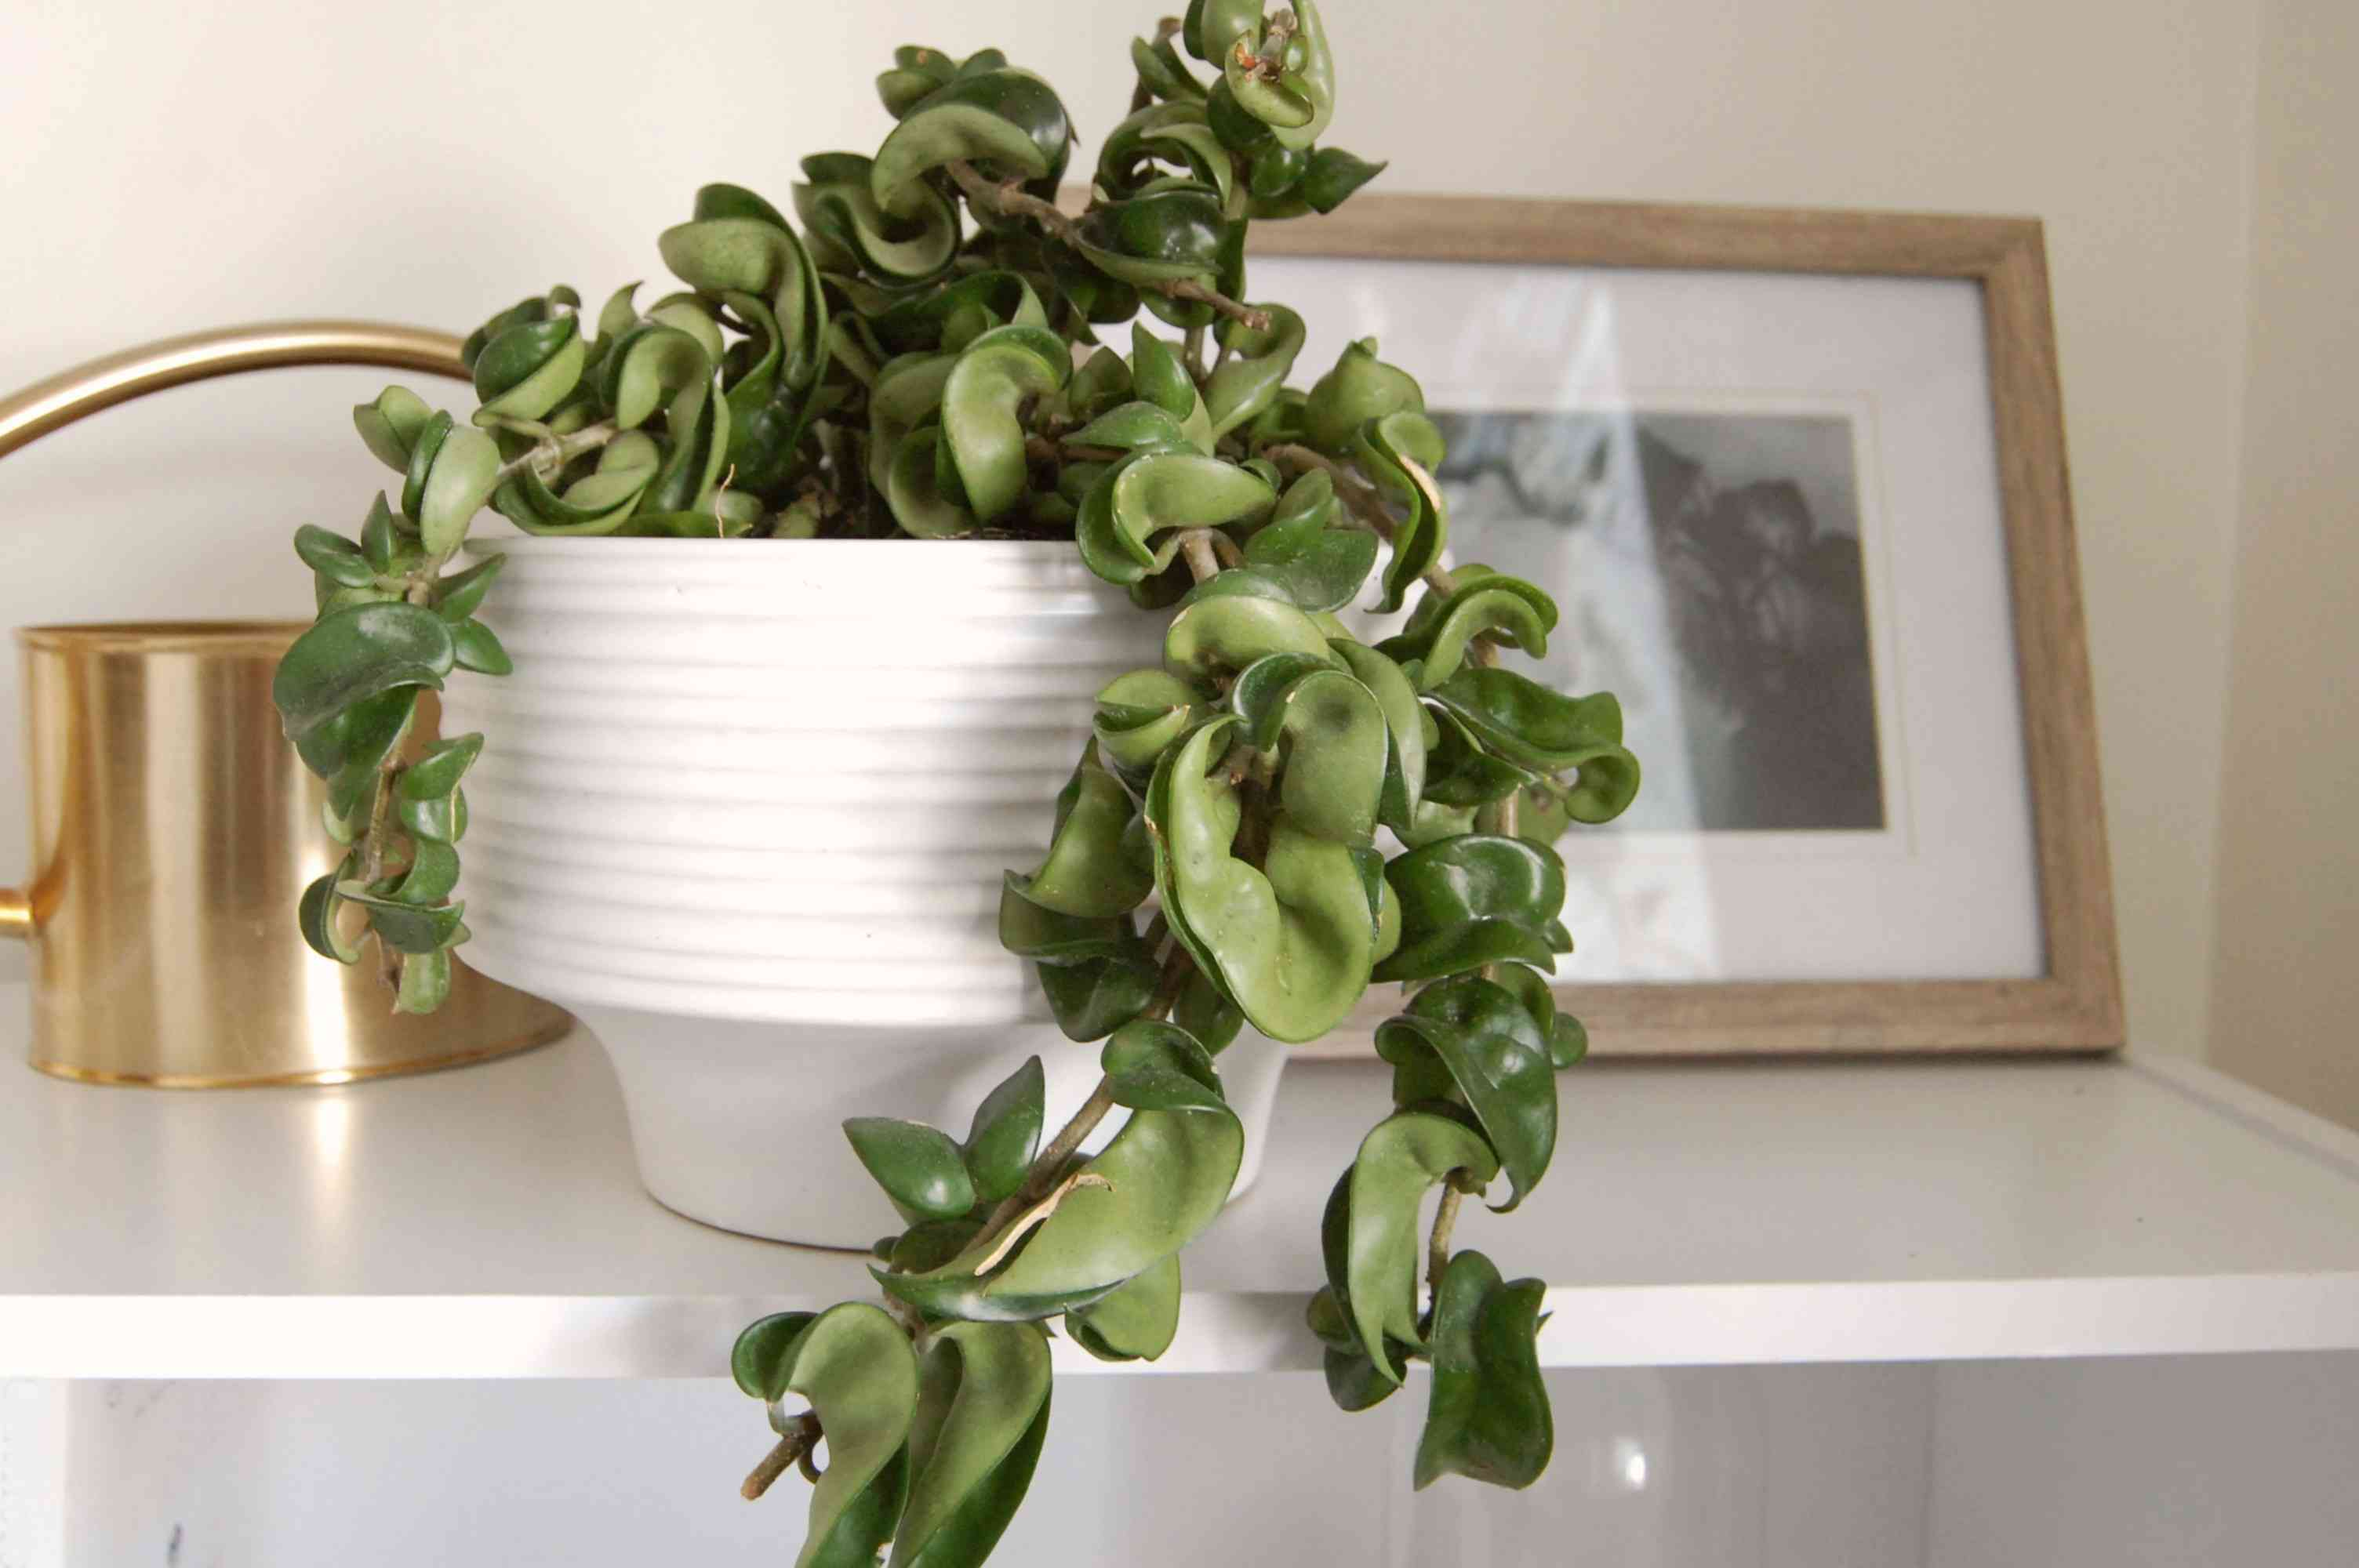 Hindu rope plant with waxy and vine-like leaves hanging over white pot on shelf next to picture frame and gold watering can